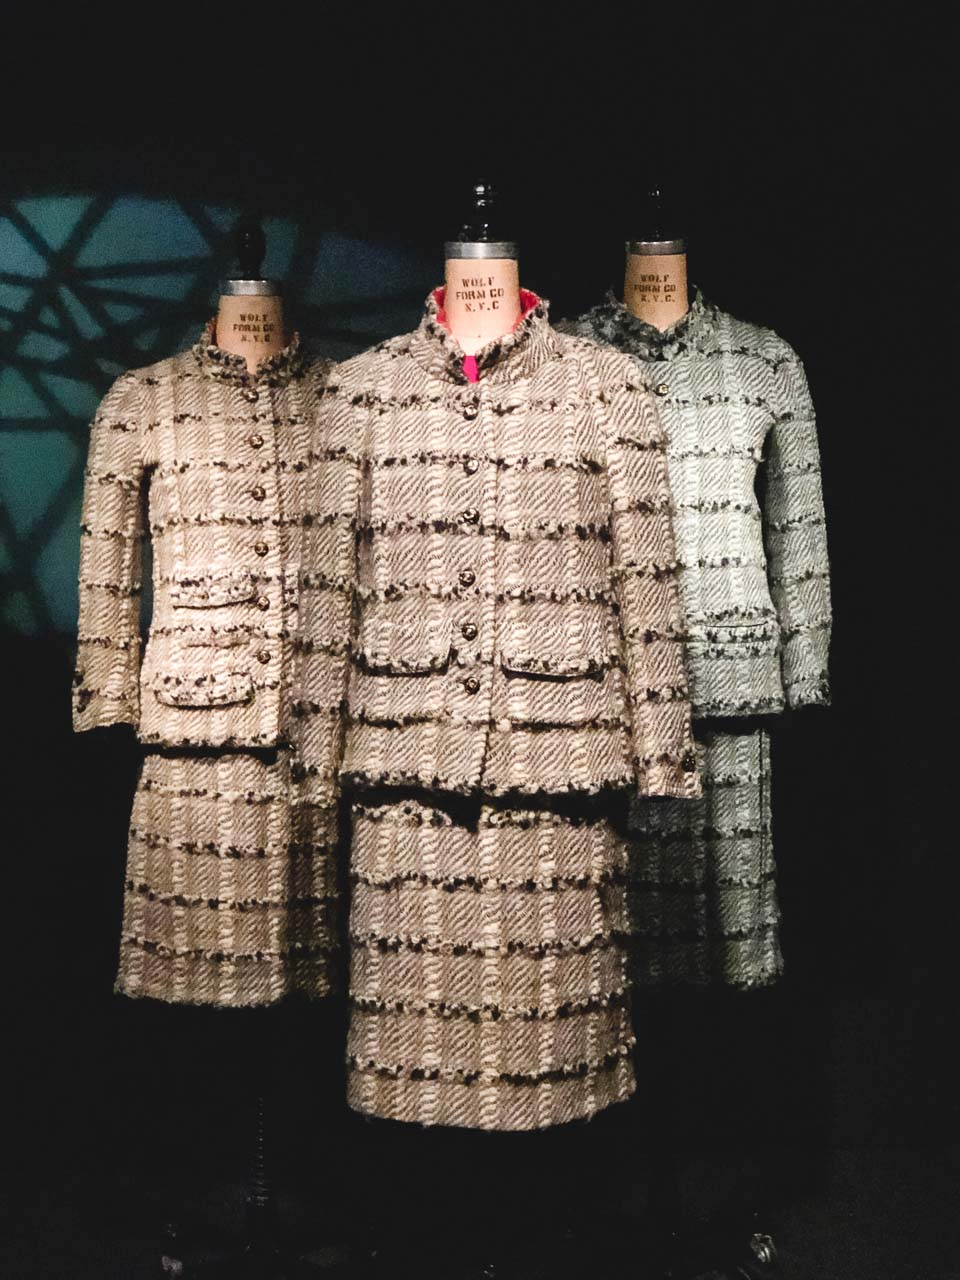 Three Chanel tweed suits (an original, licensed copy and a counterfeit) on display at the Museum at the Fashion Institute of Technology in New York